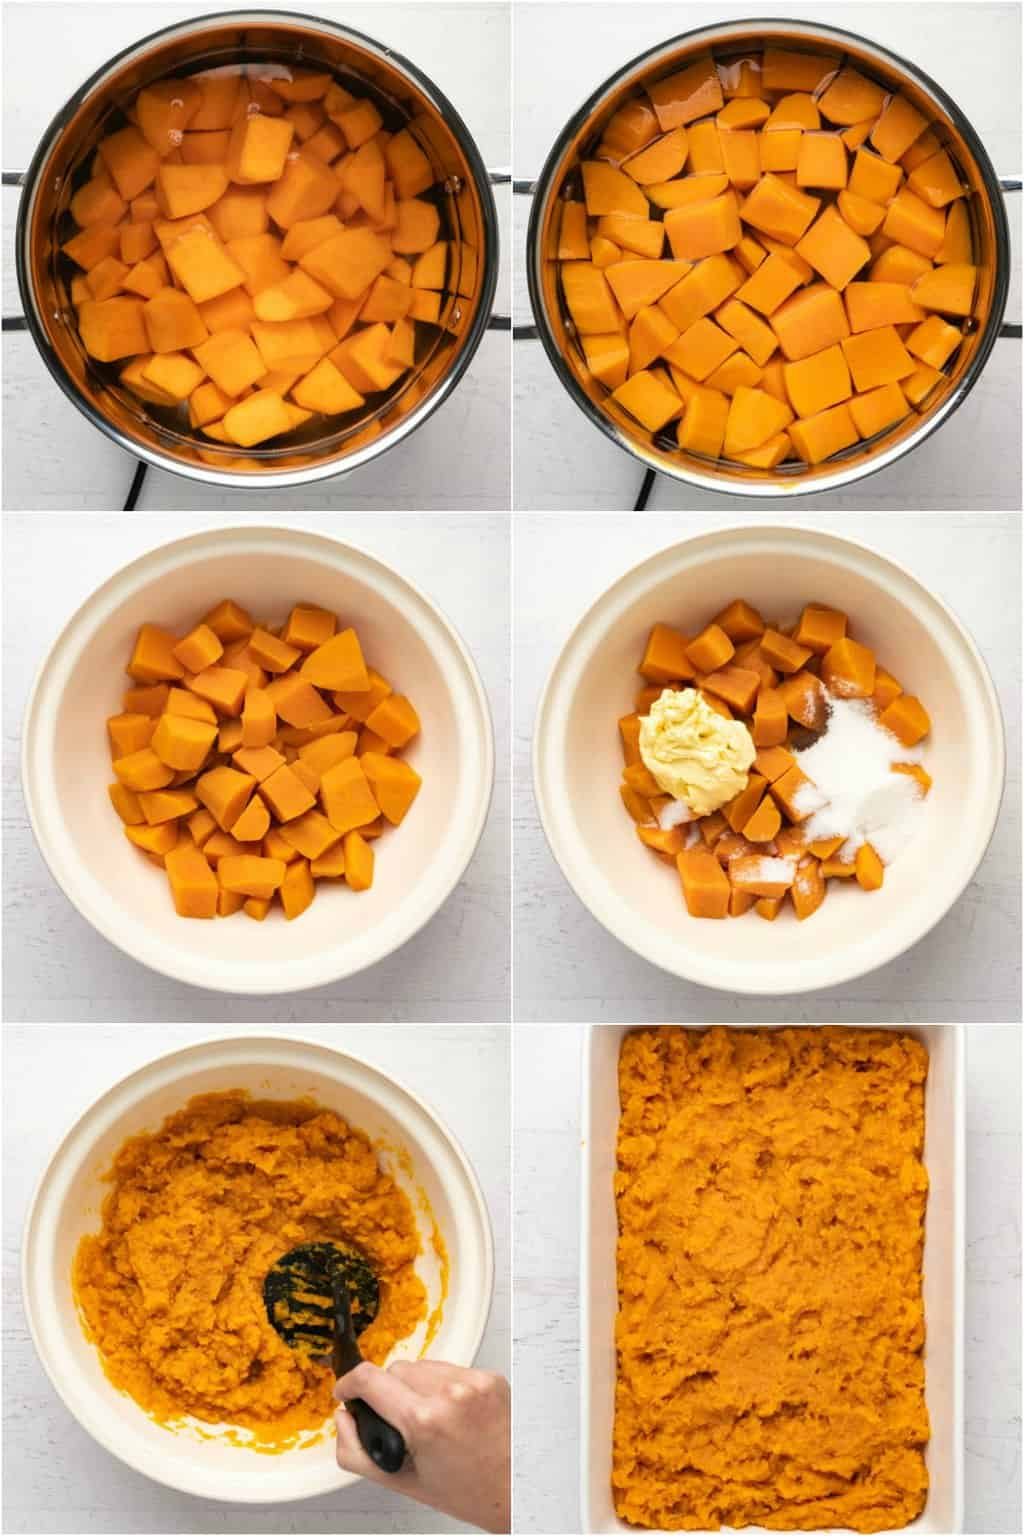 Step by step process photo collage of making the mashed sweet potato for a sweet potato casserole.